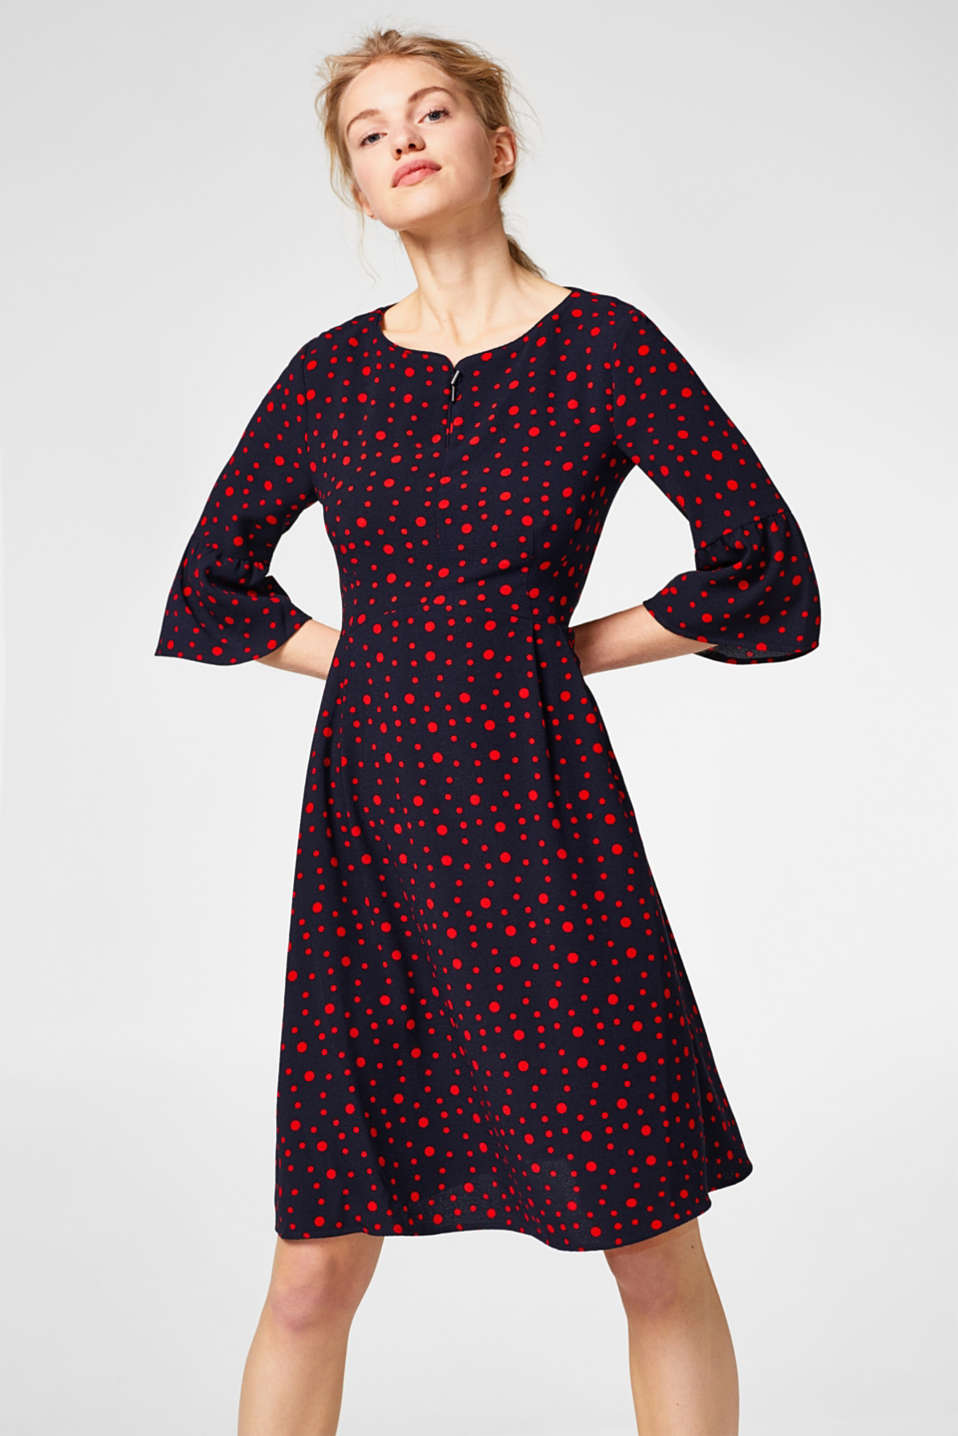 edc - Flowing dress with polka dots